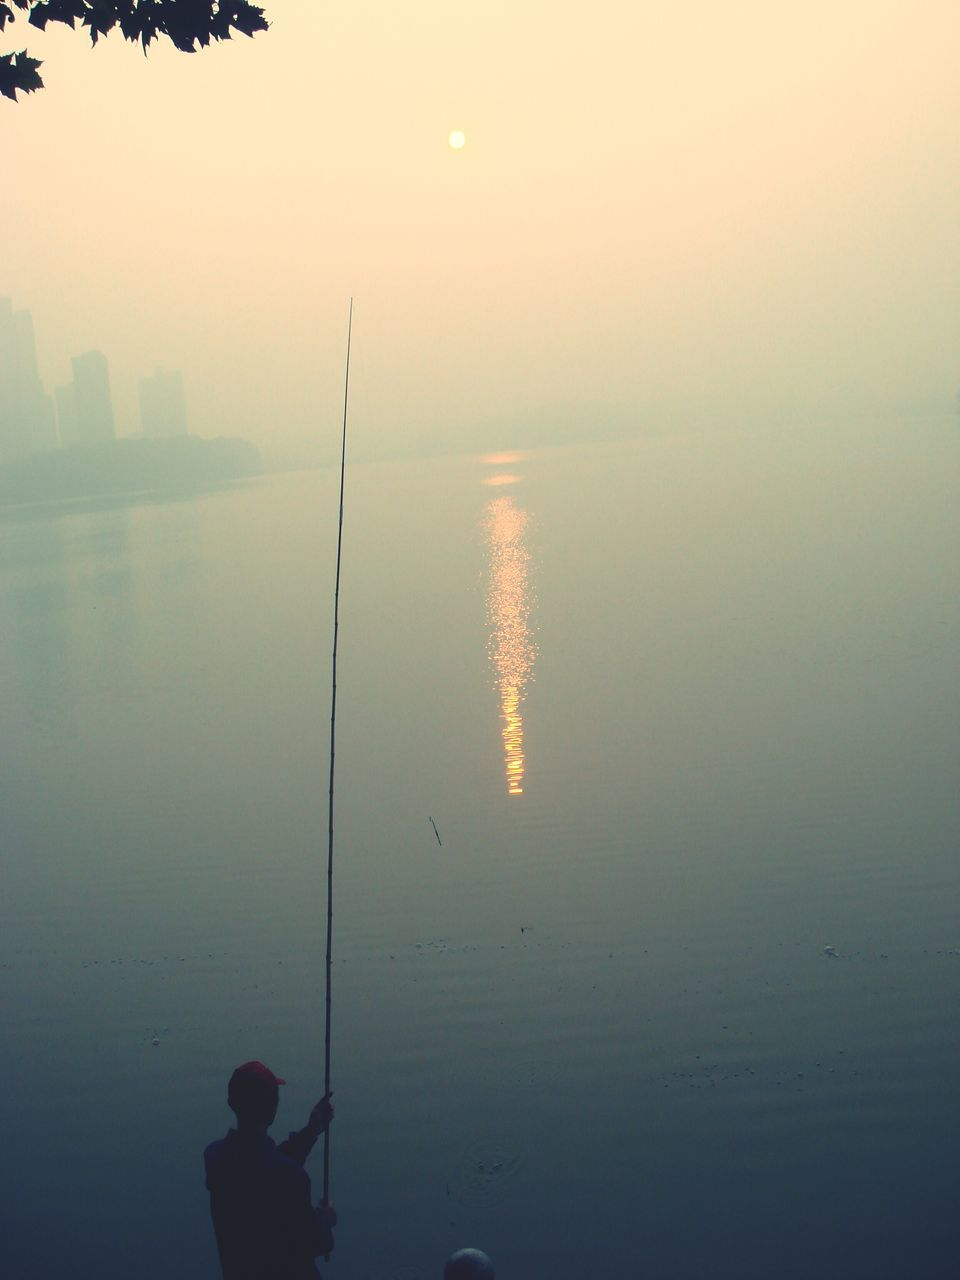 fishing, water, fishing pole, tranquil scene, tranquility, silhouette, sea, nature, sunset, outdoors, beauty in nature, weekend activities, standing, scenics, clear sky, one person, men, real people, sky, day, people